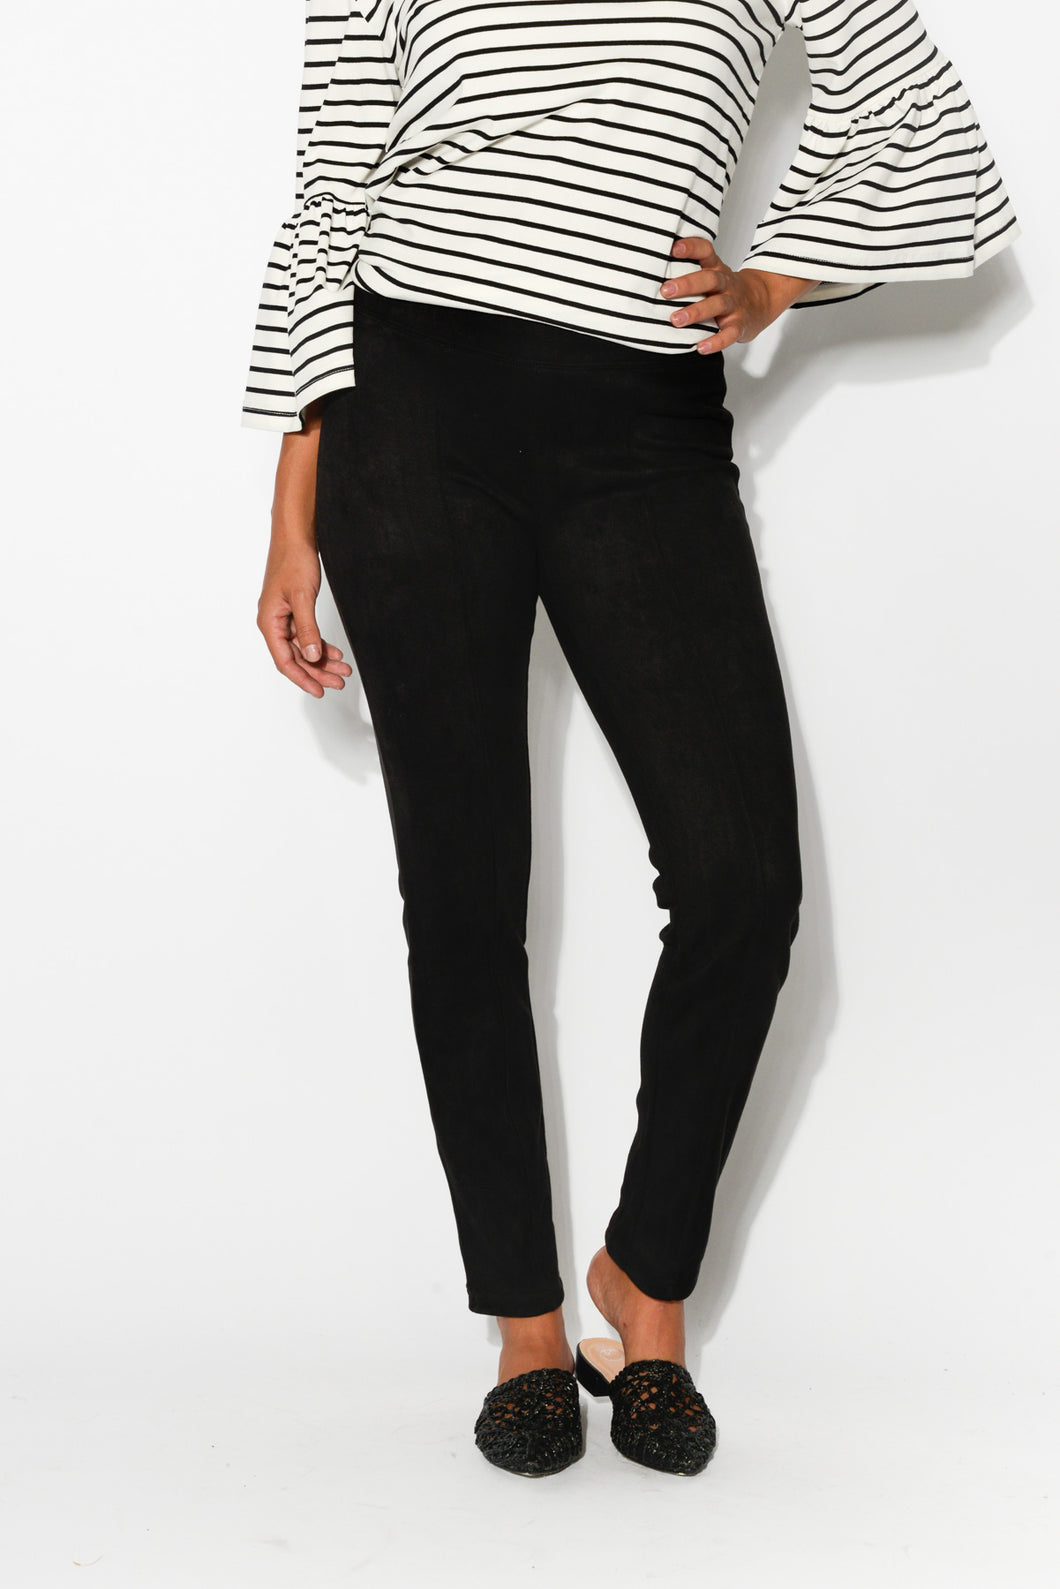 Esther Black Tailored Pant - Blue Bungalow